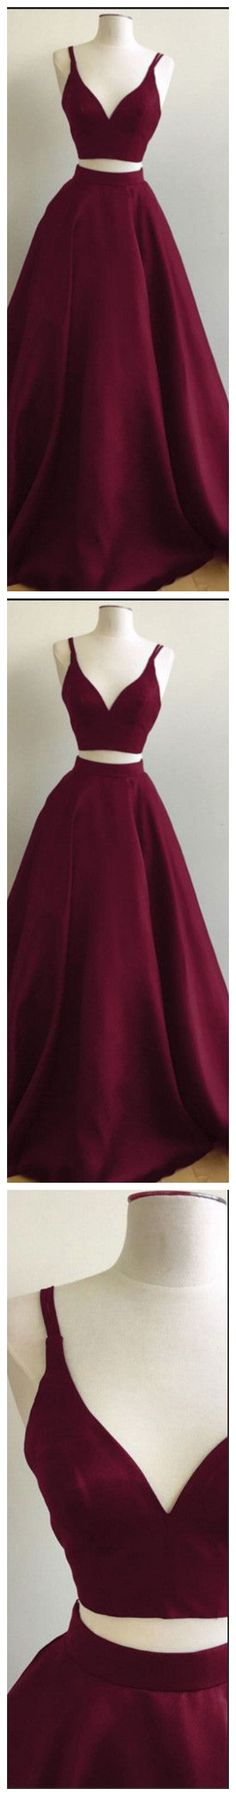 Burgundy A-line Straps Two Piece Formal Dress Sleeveless Elegant Prom Dress